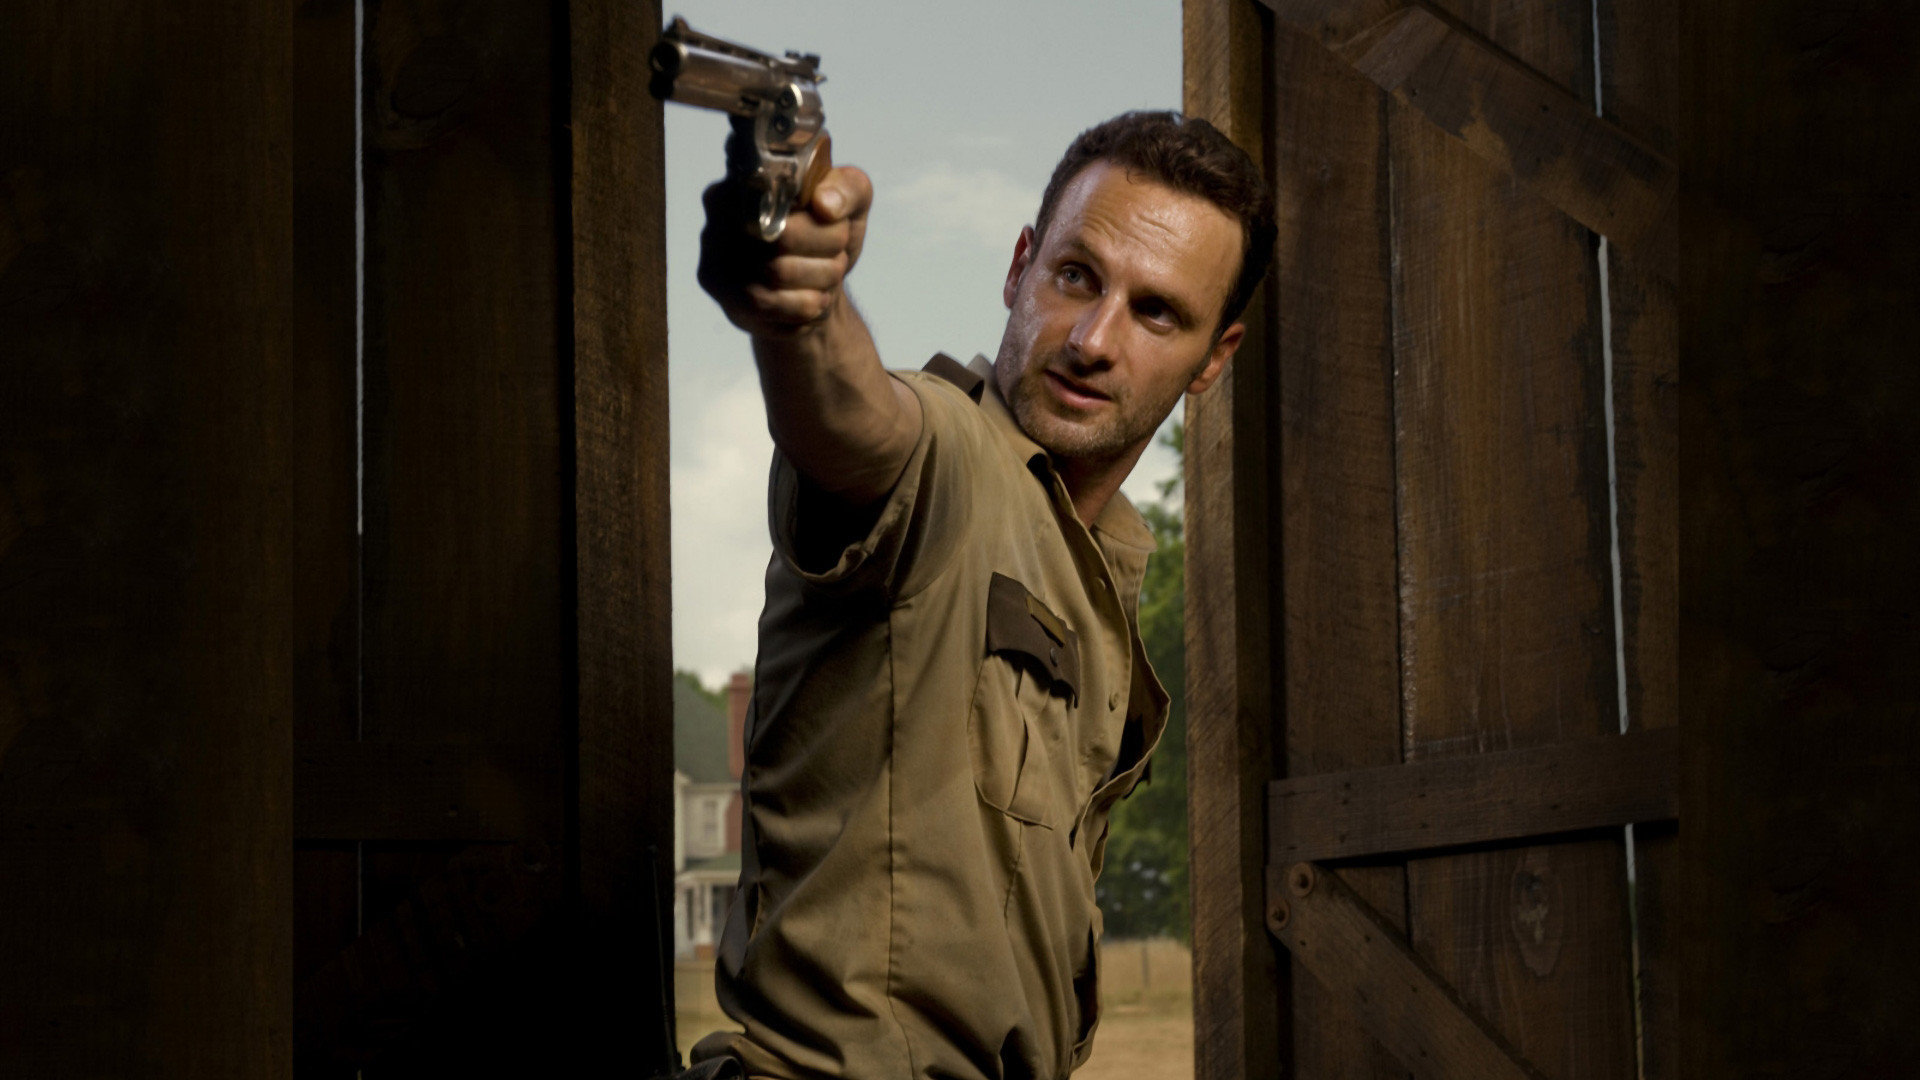 Awesome Rick Grimes Free Wallpaper ID190811 For Hd 1080p PC